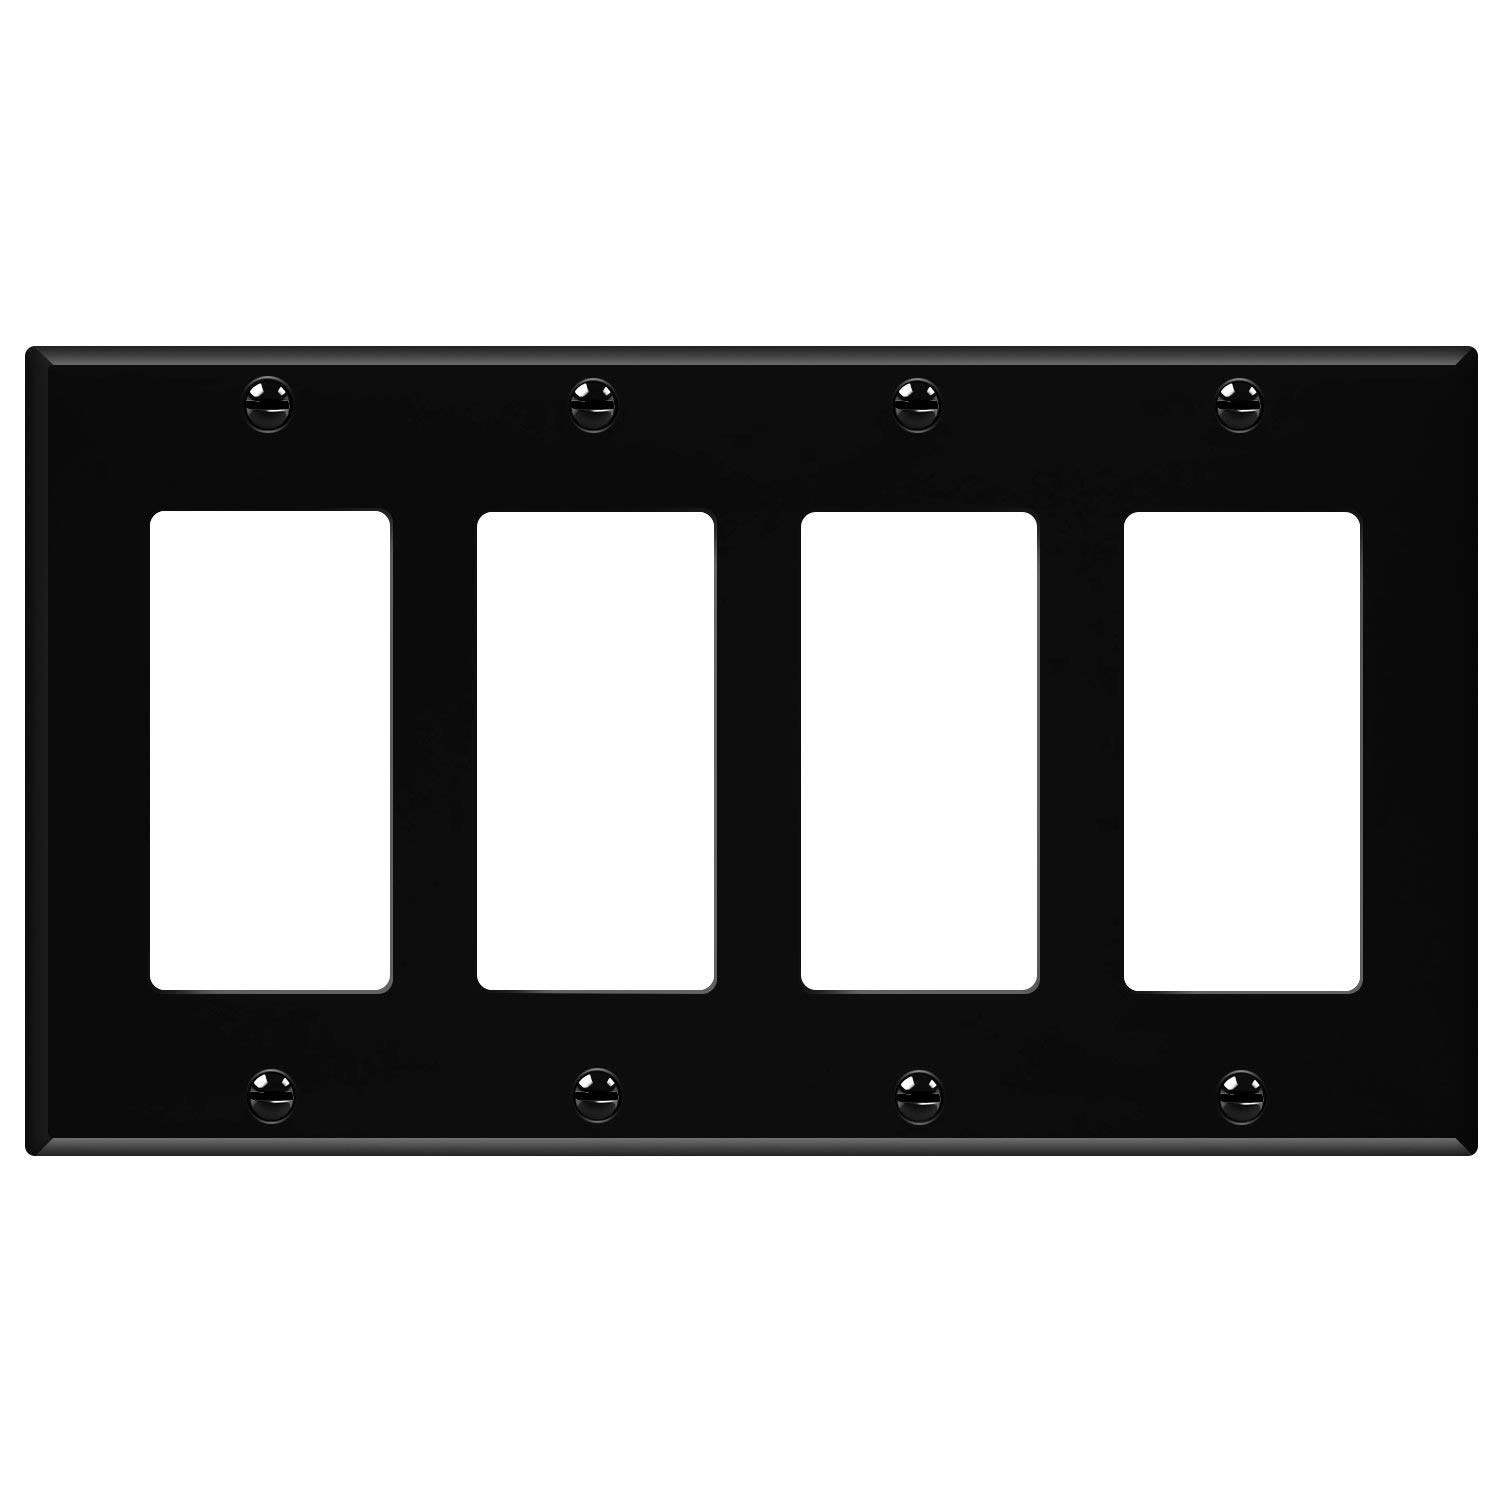 Enerlites 8834-BK Decorator Light Switch/Receptacle Outlet Wall Plate, Standard Size 4-Gang, Polycarbonate Thermoplastic, Black